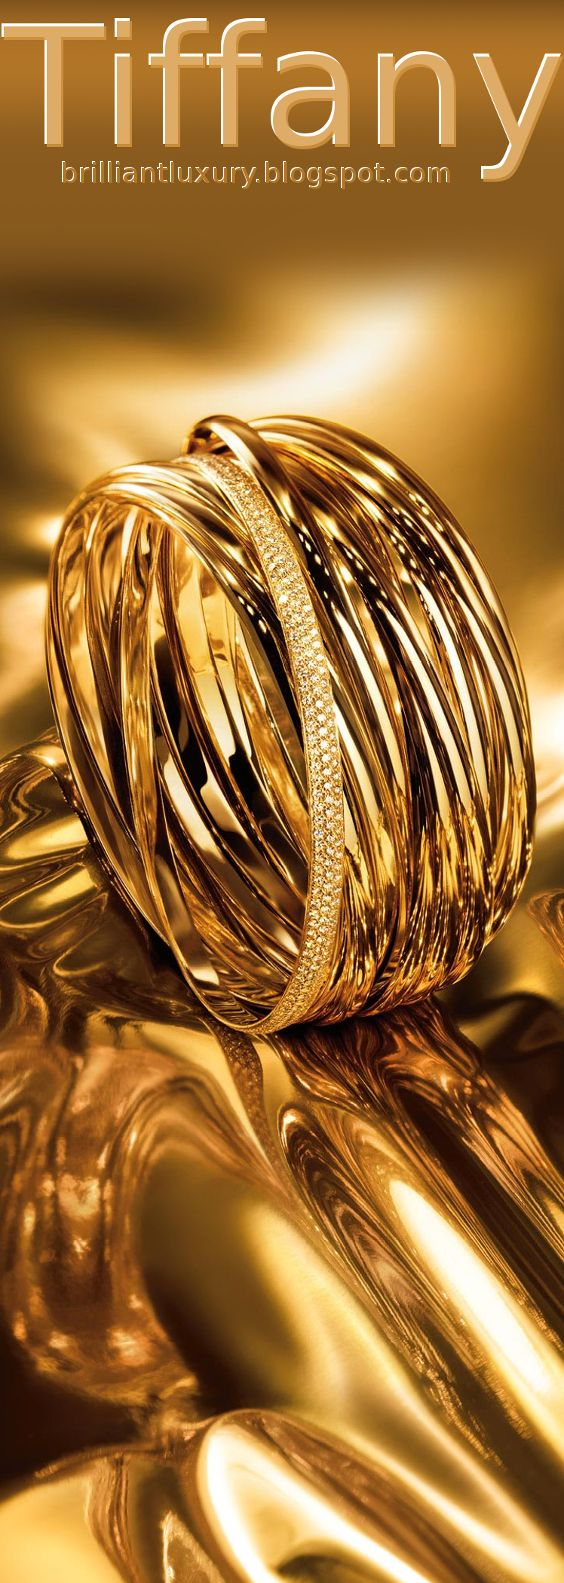 Brilliant Luxury ♦ Tiffany Go for Gold ~ Paloma's Melody five-band and nine-band bangles in 18k gold